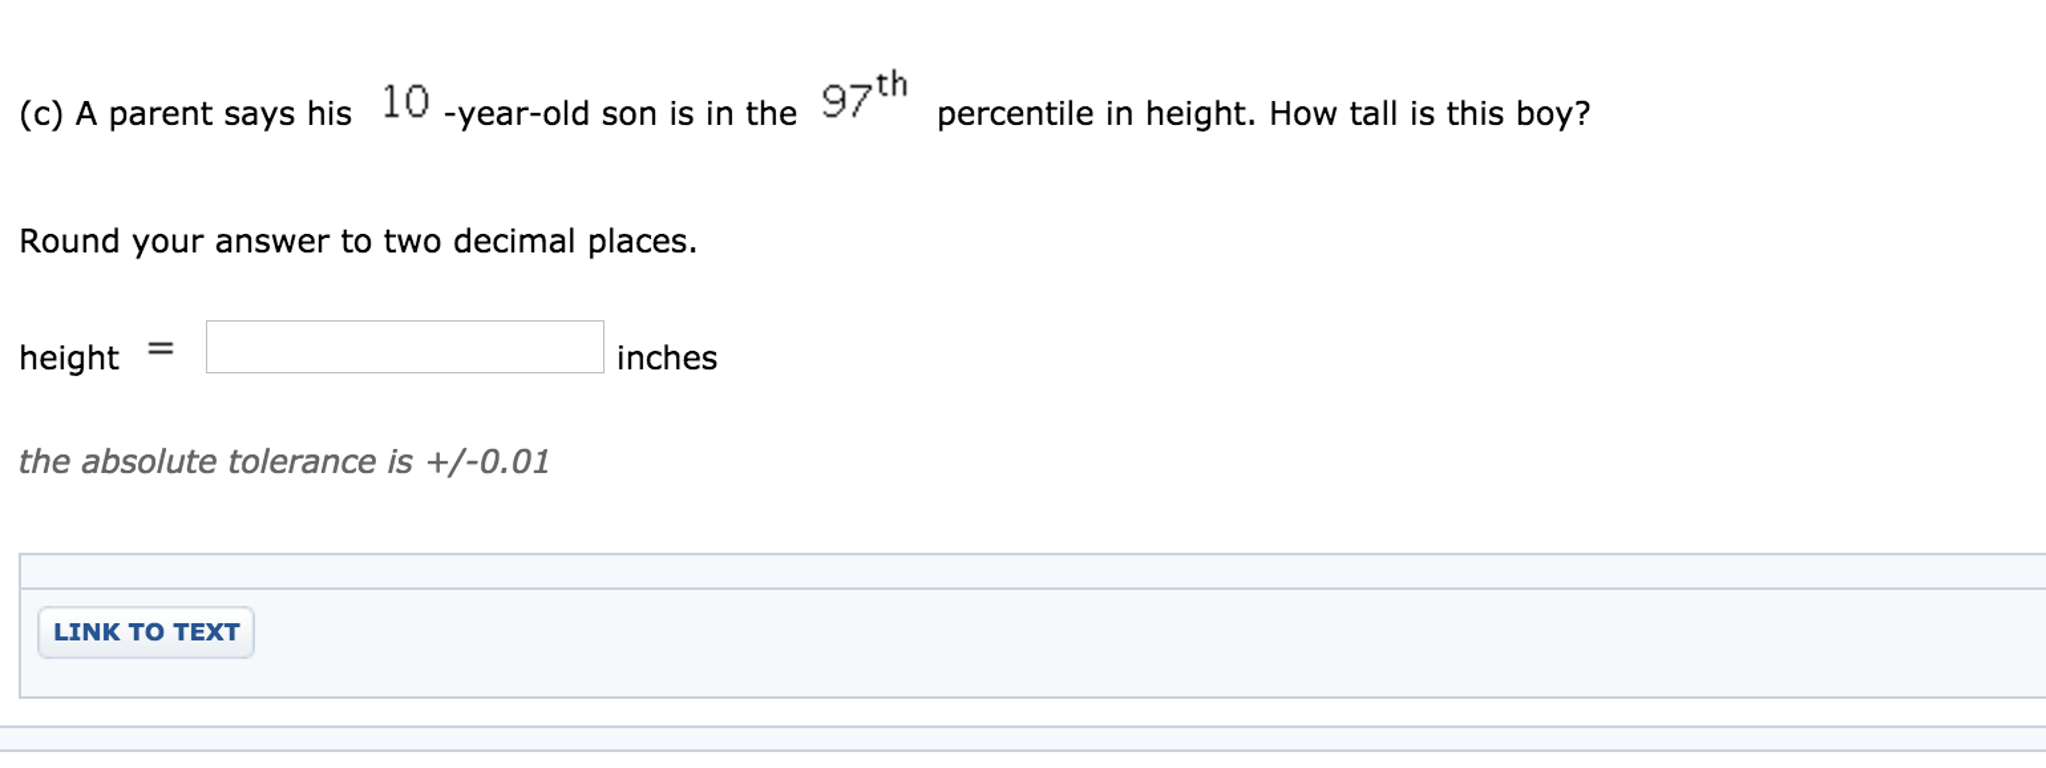 Heights Heights Often Year Old Boys (5 Th Graders) Follow An Approximate  Normal Distribution With Mean Mu = 555 Inches And Standard Deviation Sigma  = 27